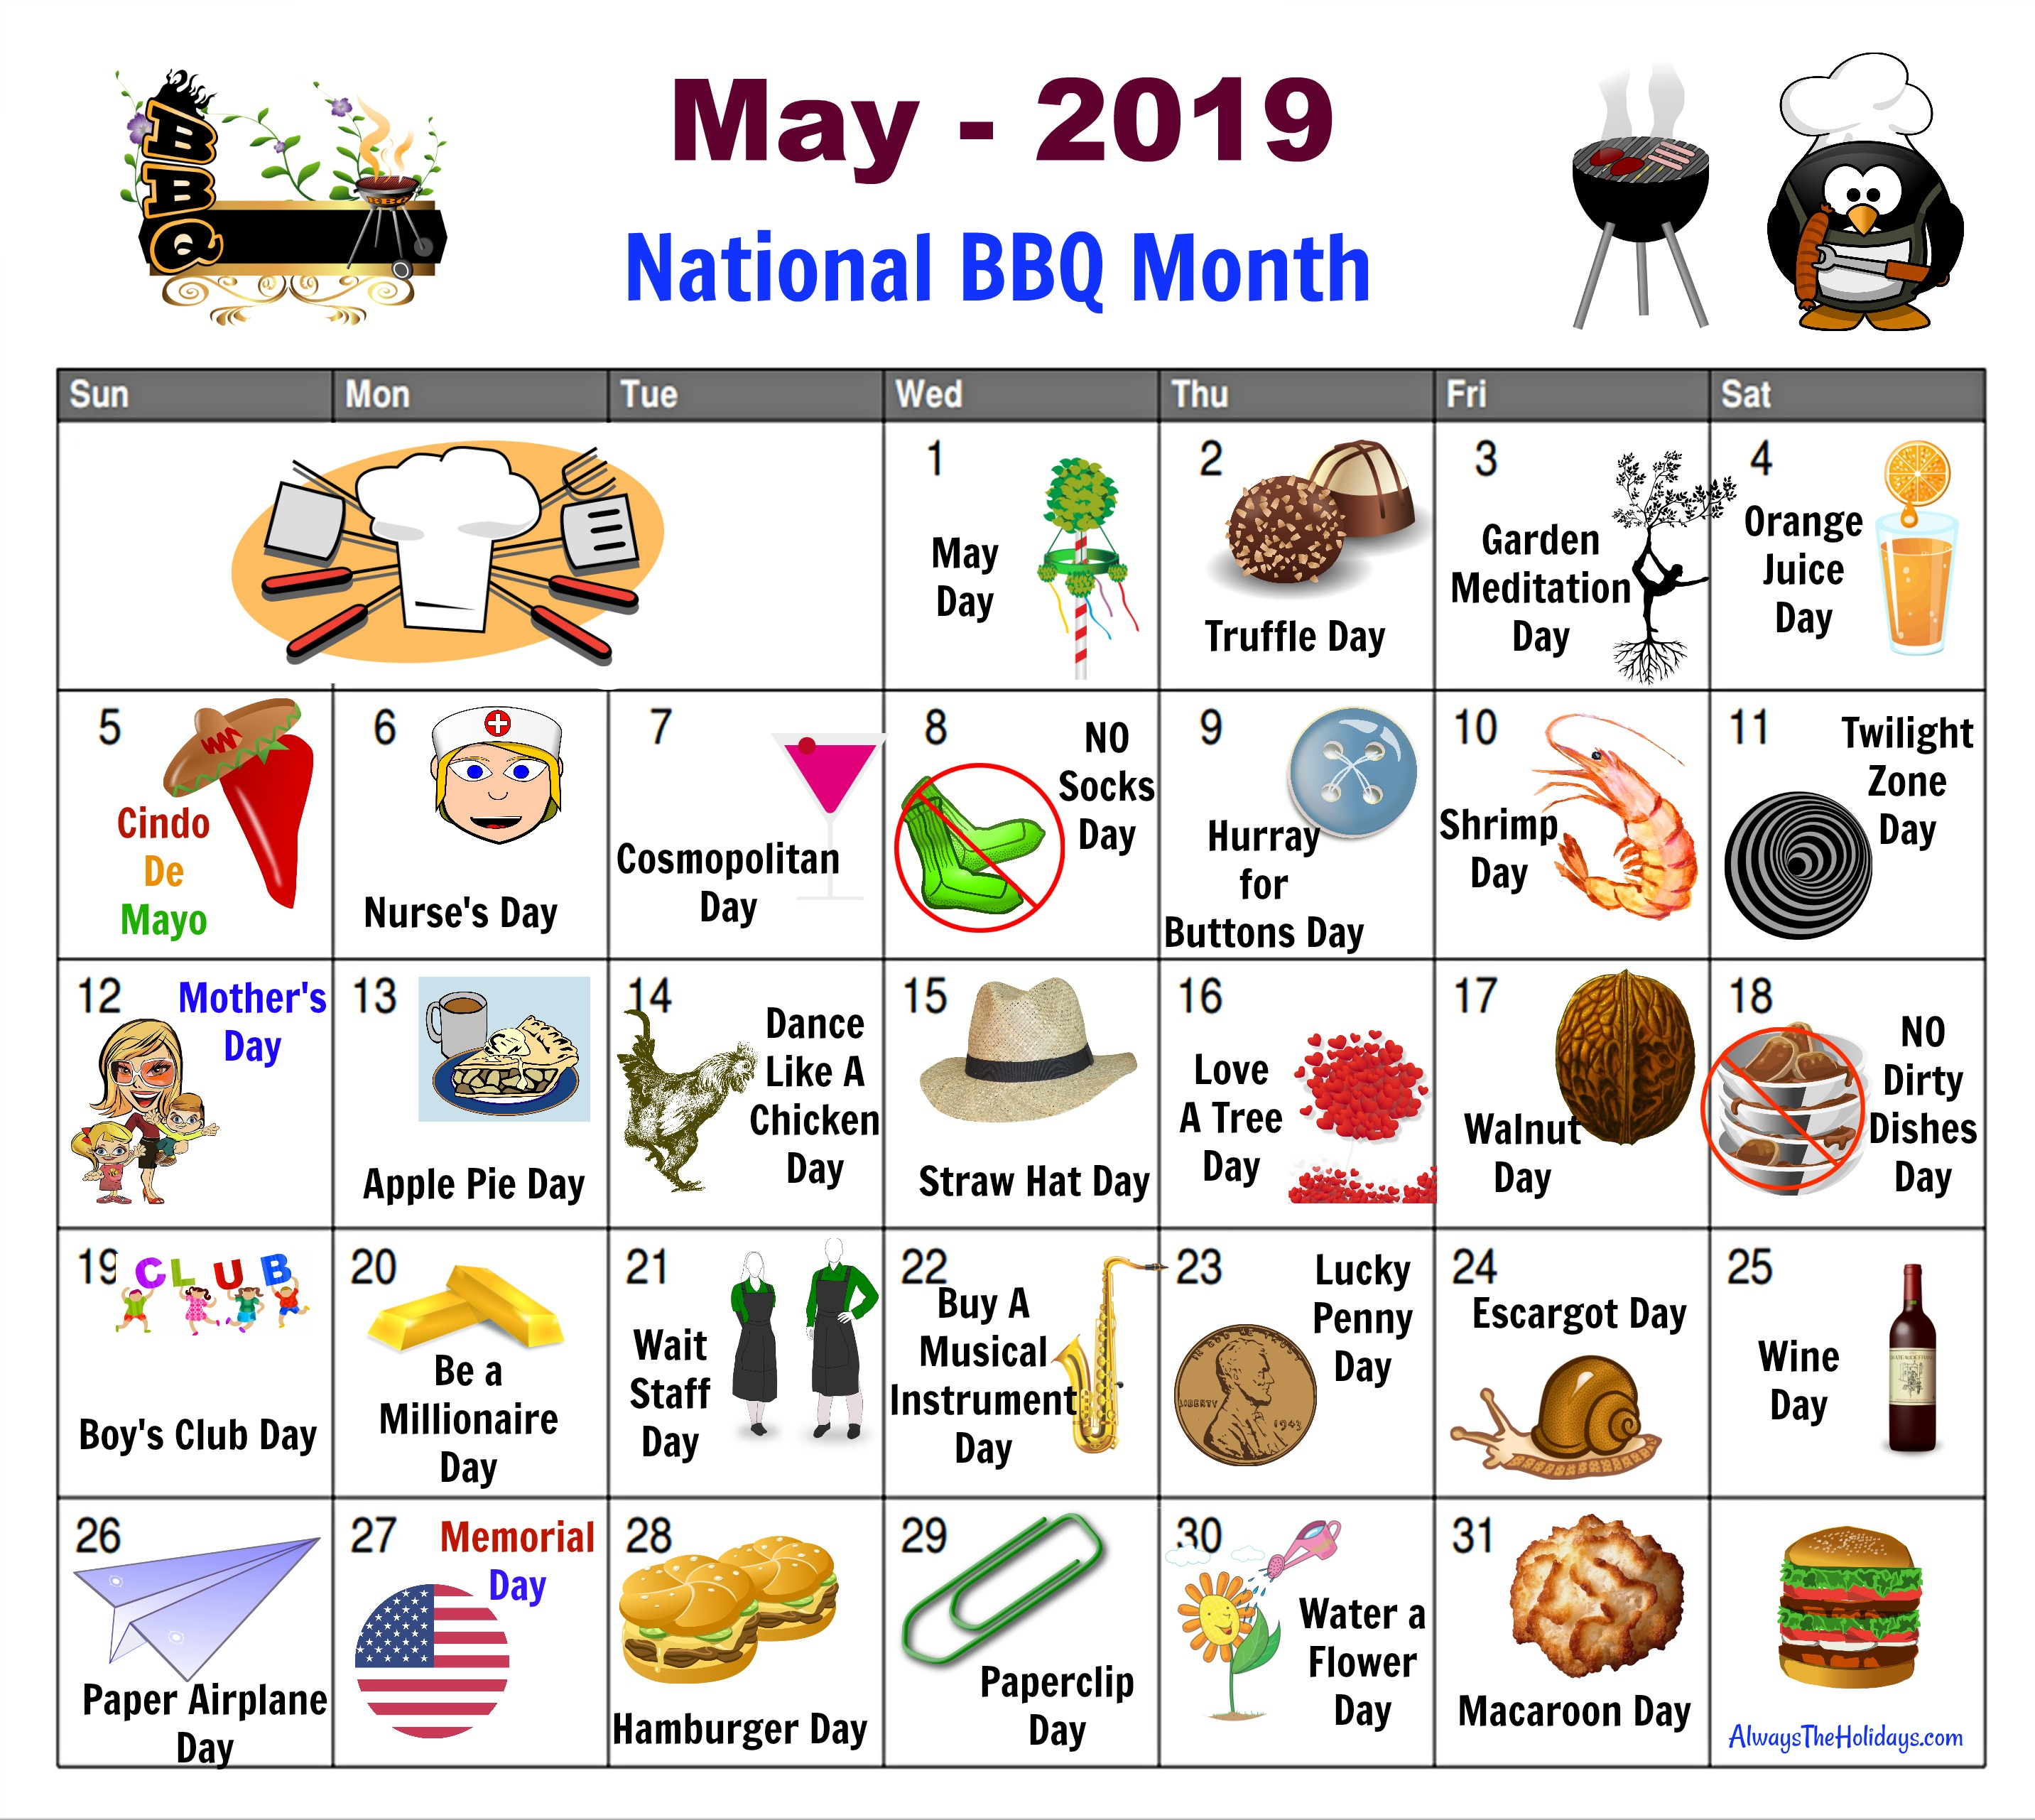 May National Day Calendar - Free Printable - Always The Holidays